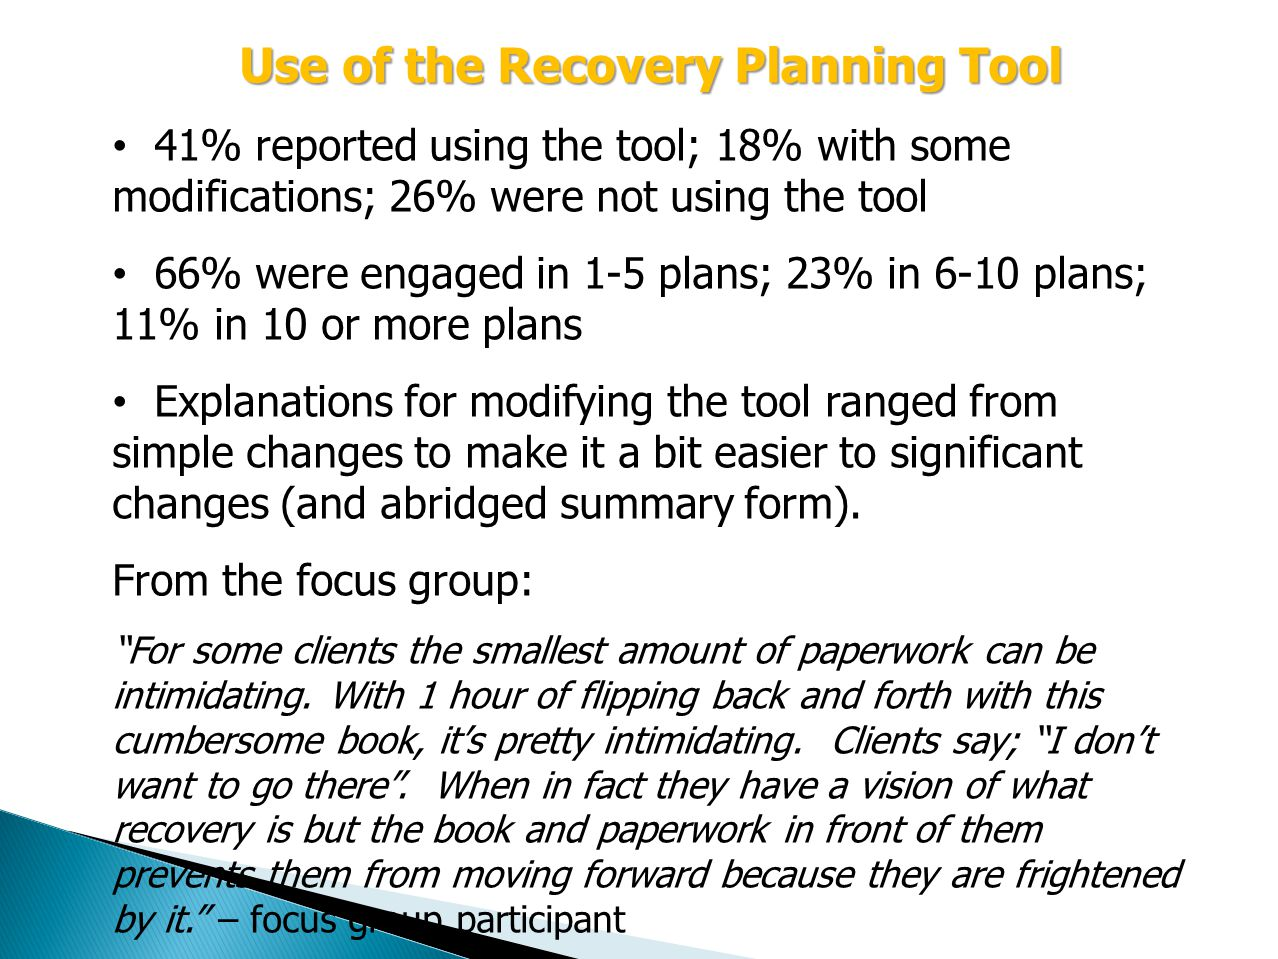 Use of the Recovery Planning Tool 41% reported using the tool; 18% with some modifications; 26% were not using the tool 66% were engaged in 1-5 plans; 23% in 6-10 plans; 11% in 10 or more plans Explanations for modifying the tool ranged from simple changes to make it a bit easier to significant changes (and abridged summary form).